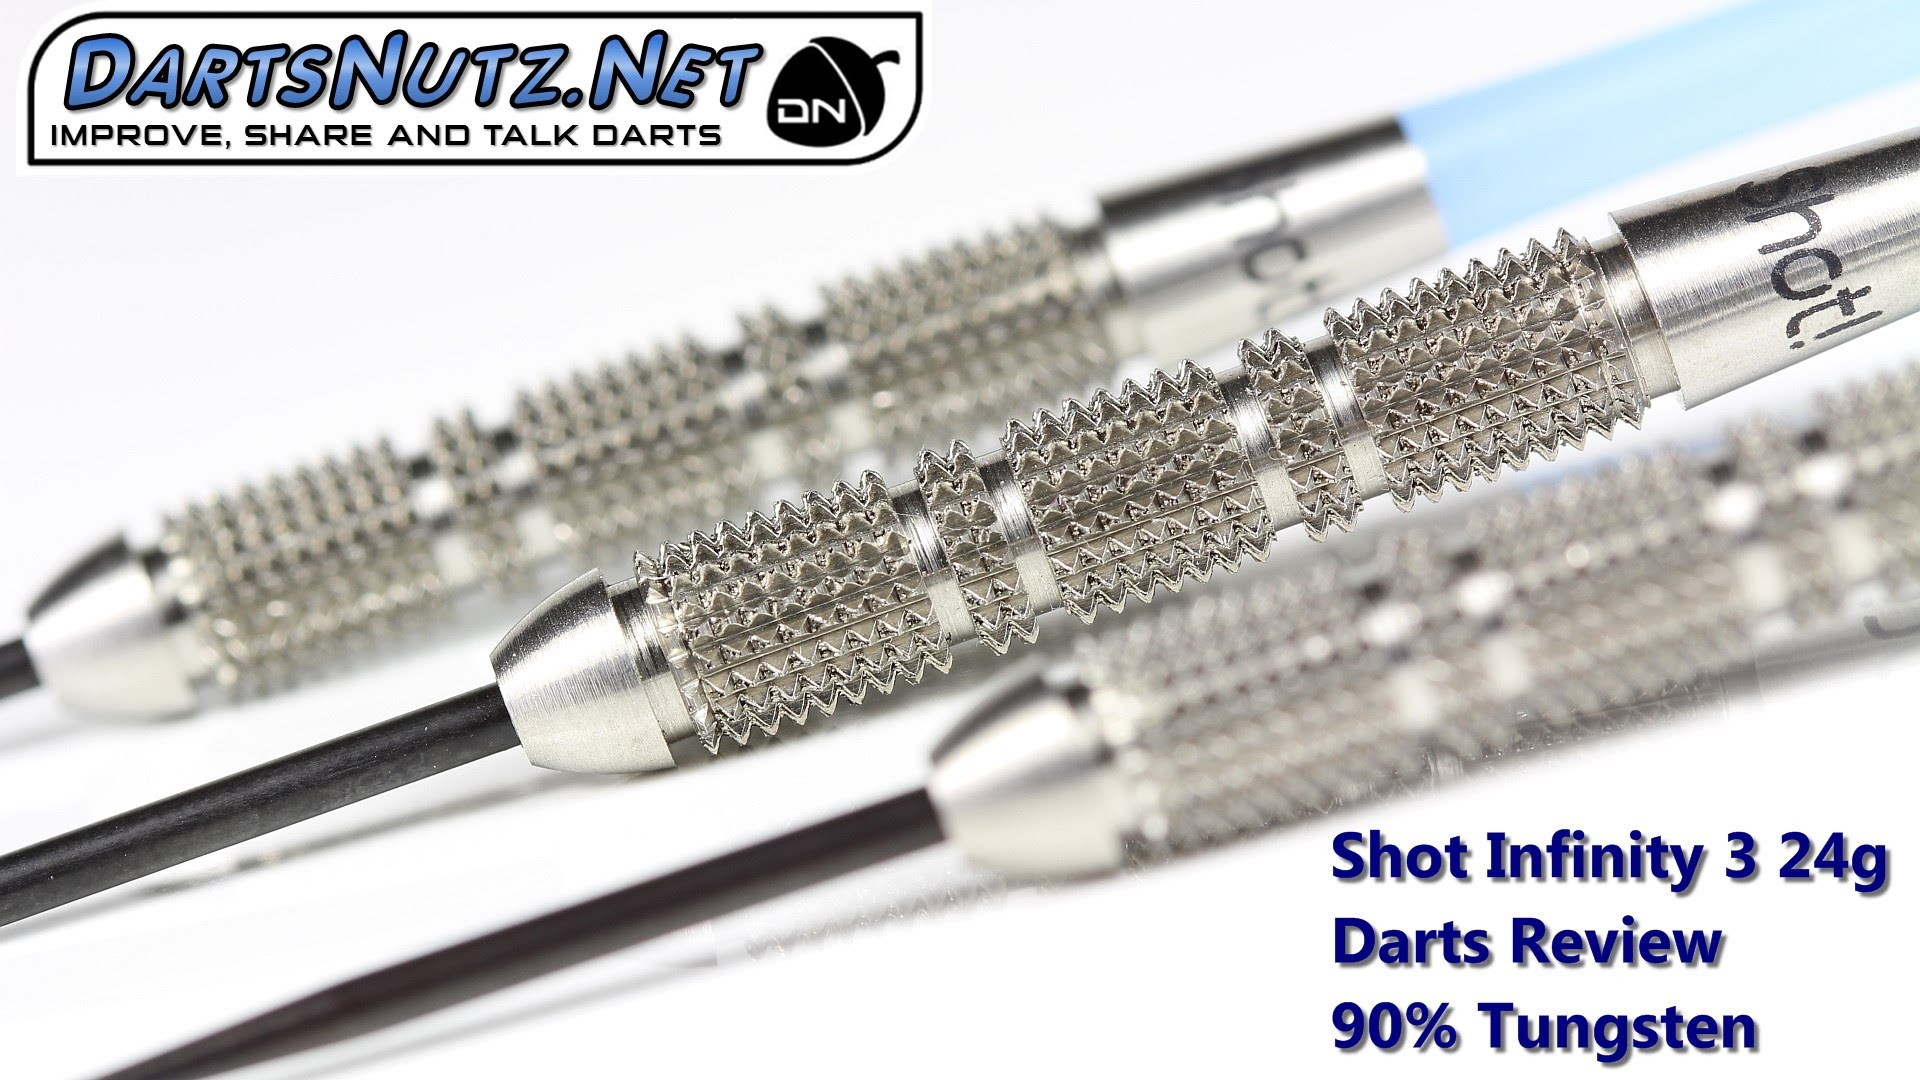 c7ab2c4bb53 Shot Infinity 3 24g darts review – Darts Planet